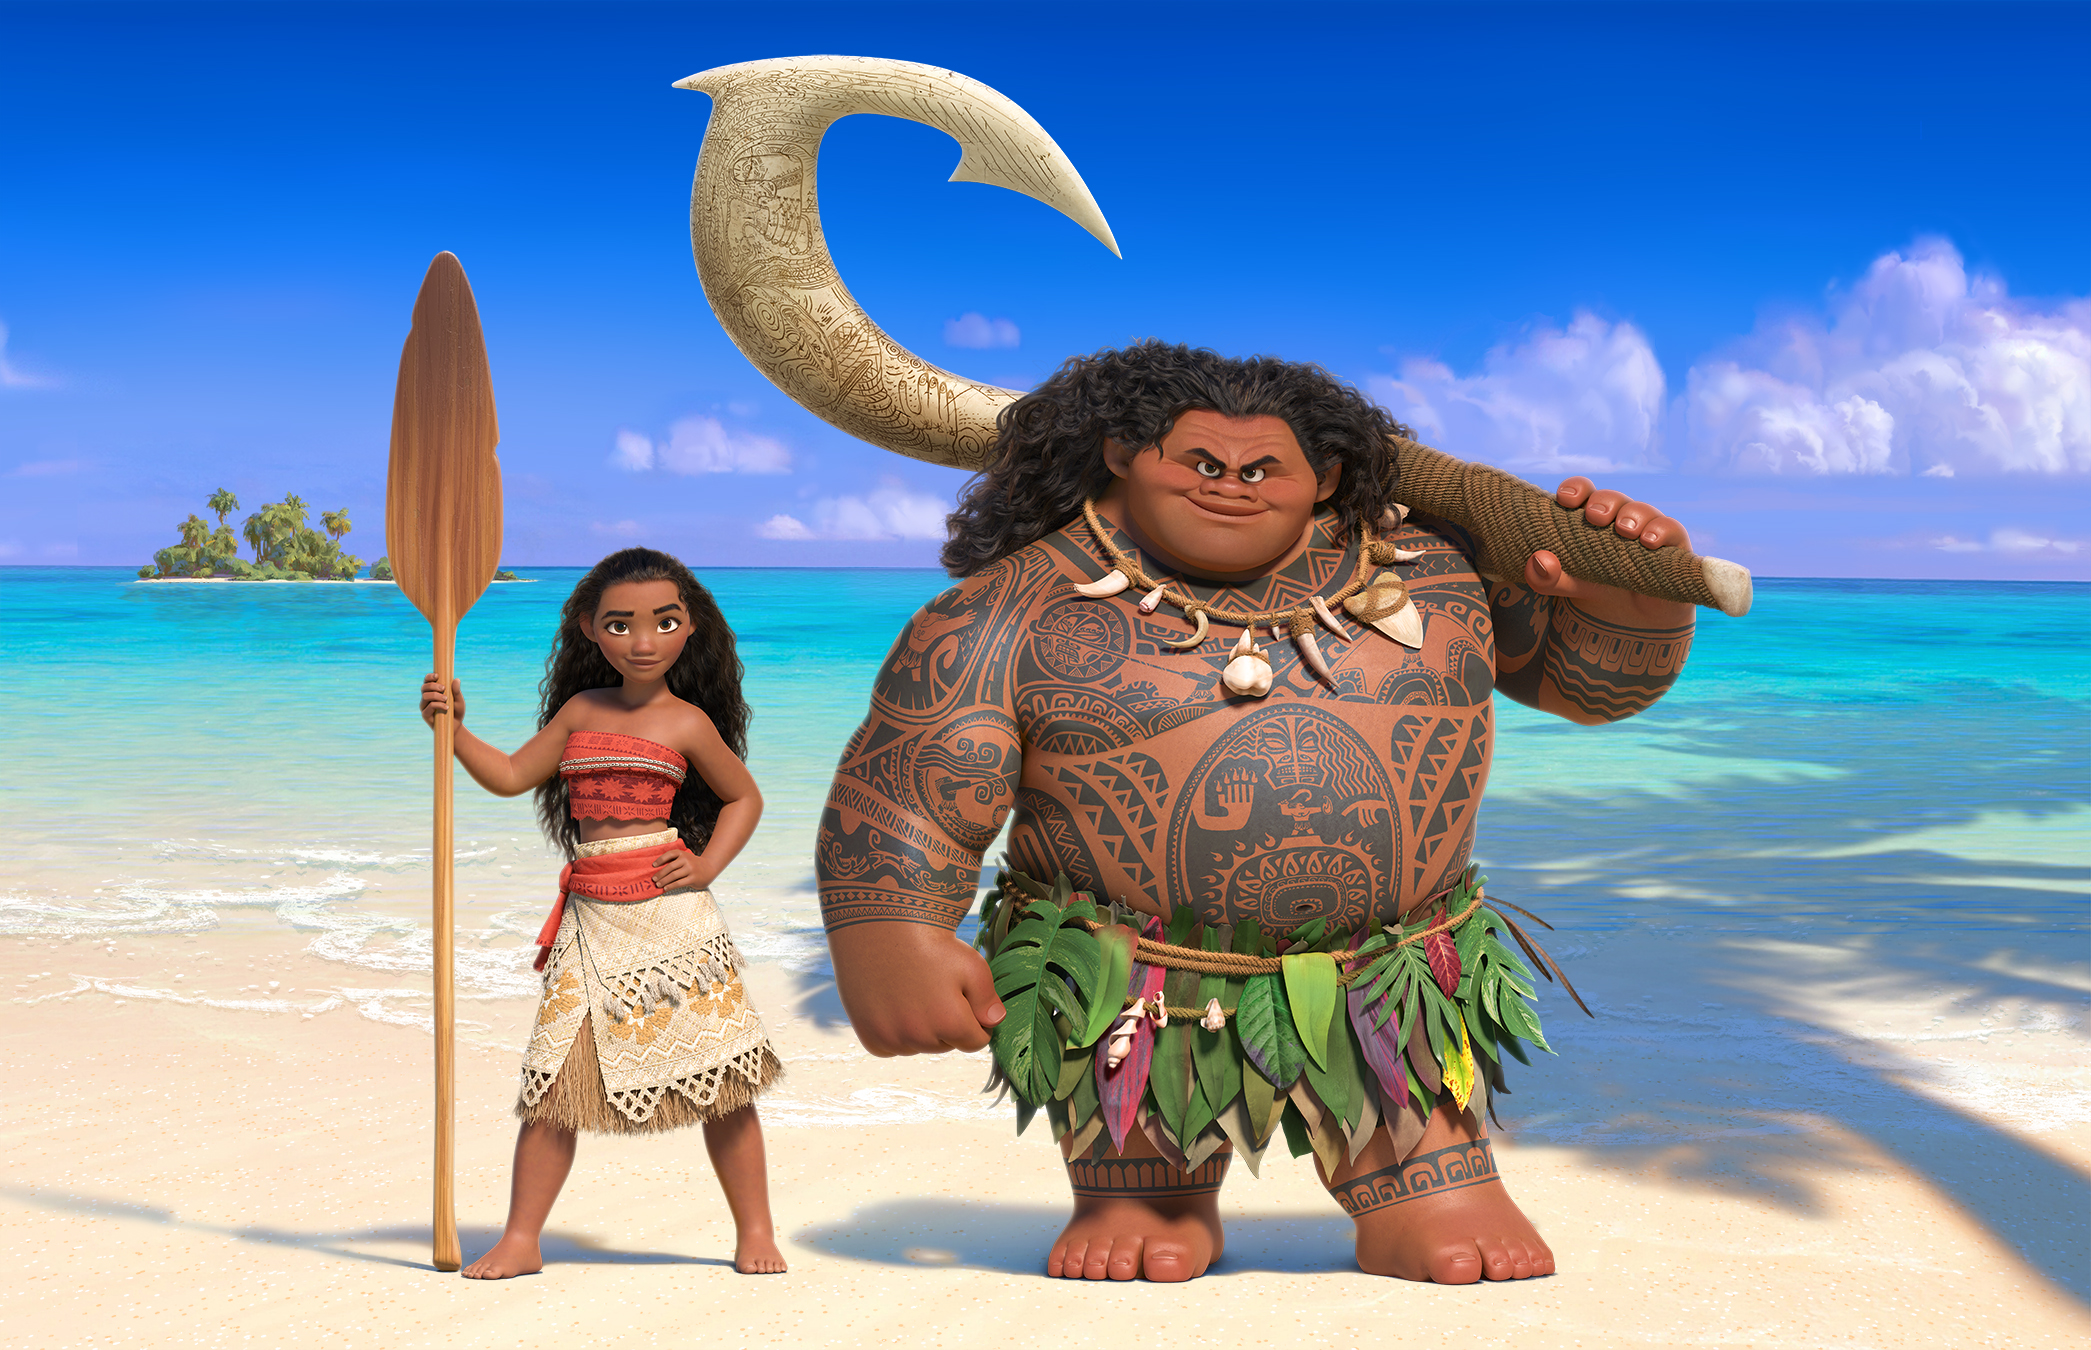 Meet Disney's Newest Princess - Moana | In Theaters Nov 2016